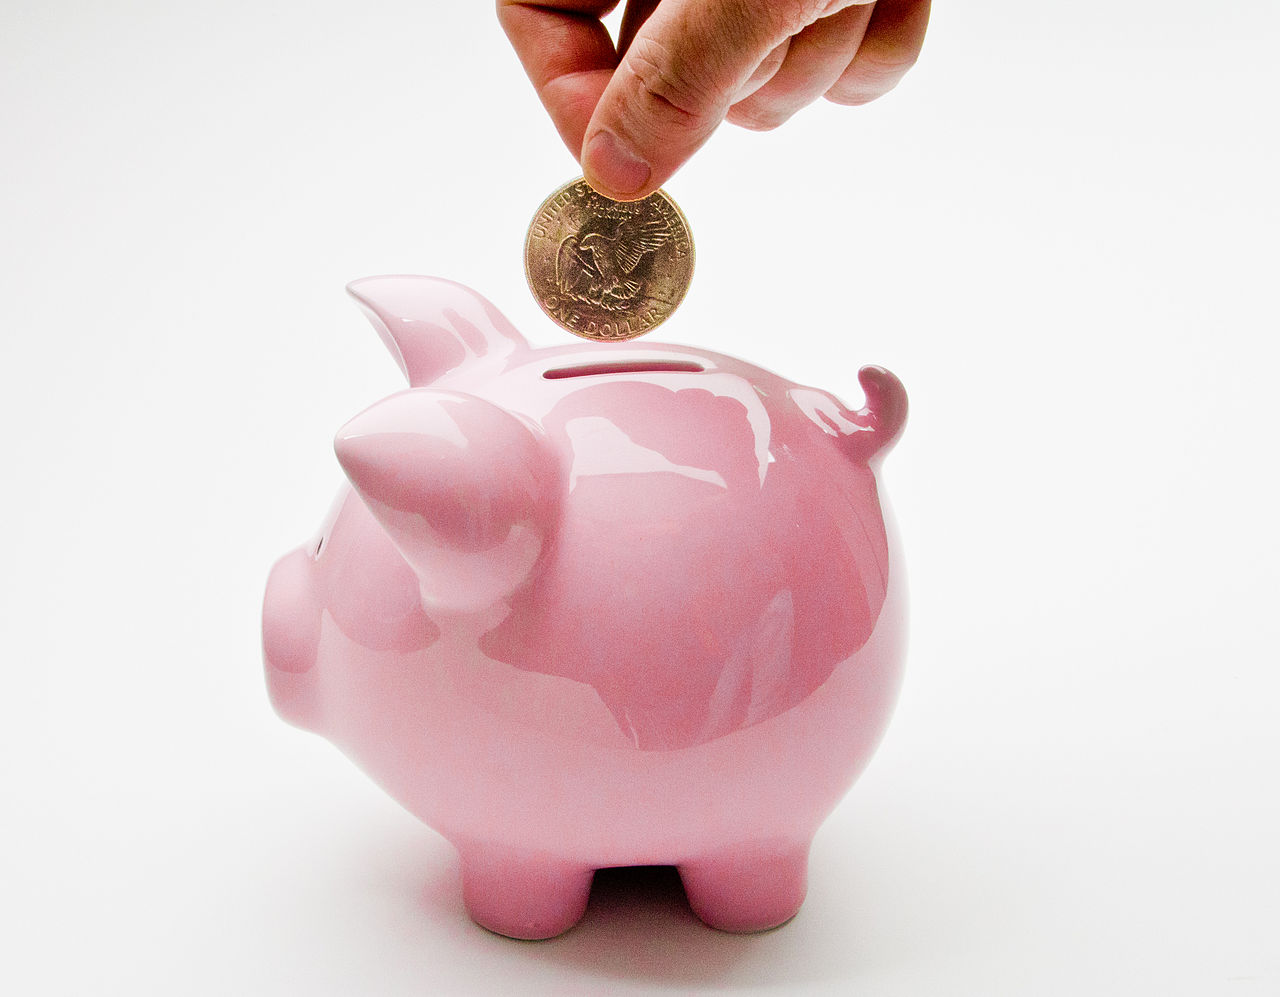 File:Hand Putting Deposit Into Piggy Bank (5737295175).jpg ...